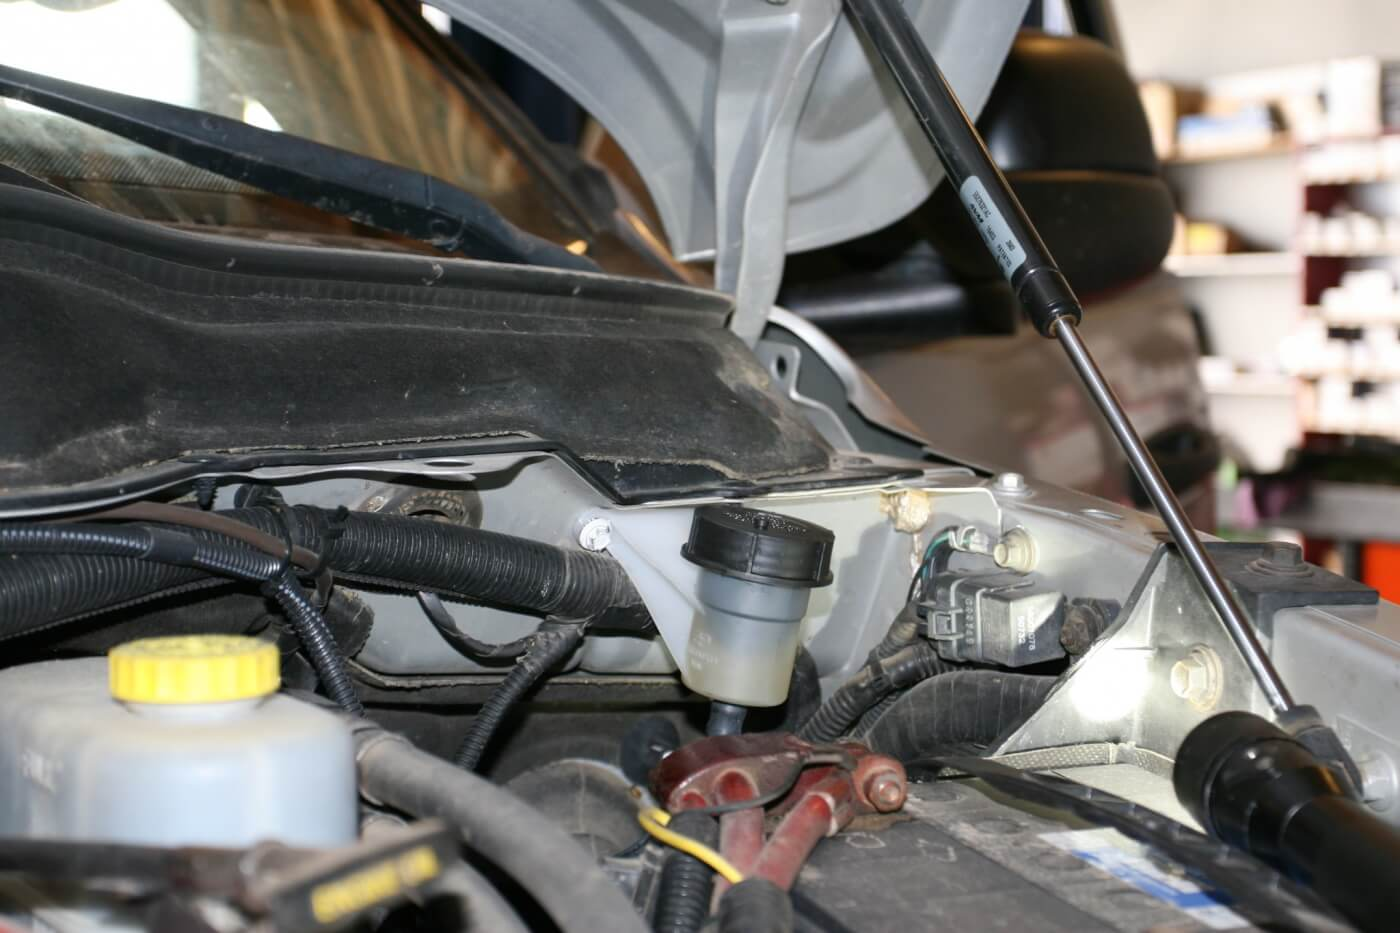 20. After mounting the hydraulic fluid reservoir in a convenient location on the firewall, the clutch pedal is adjusted so it's even with the brake pedal.